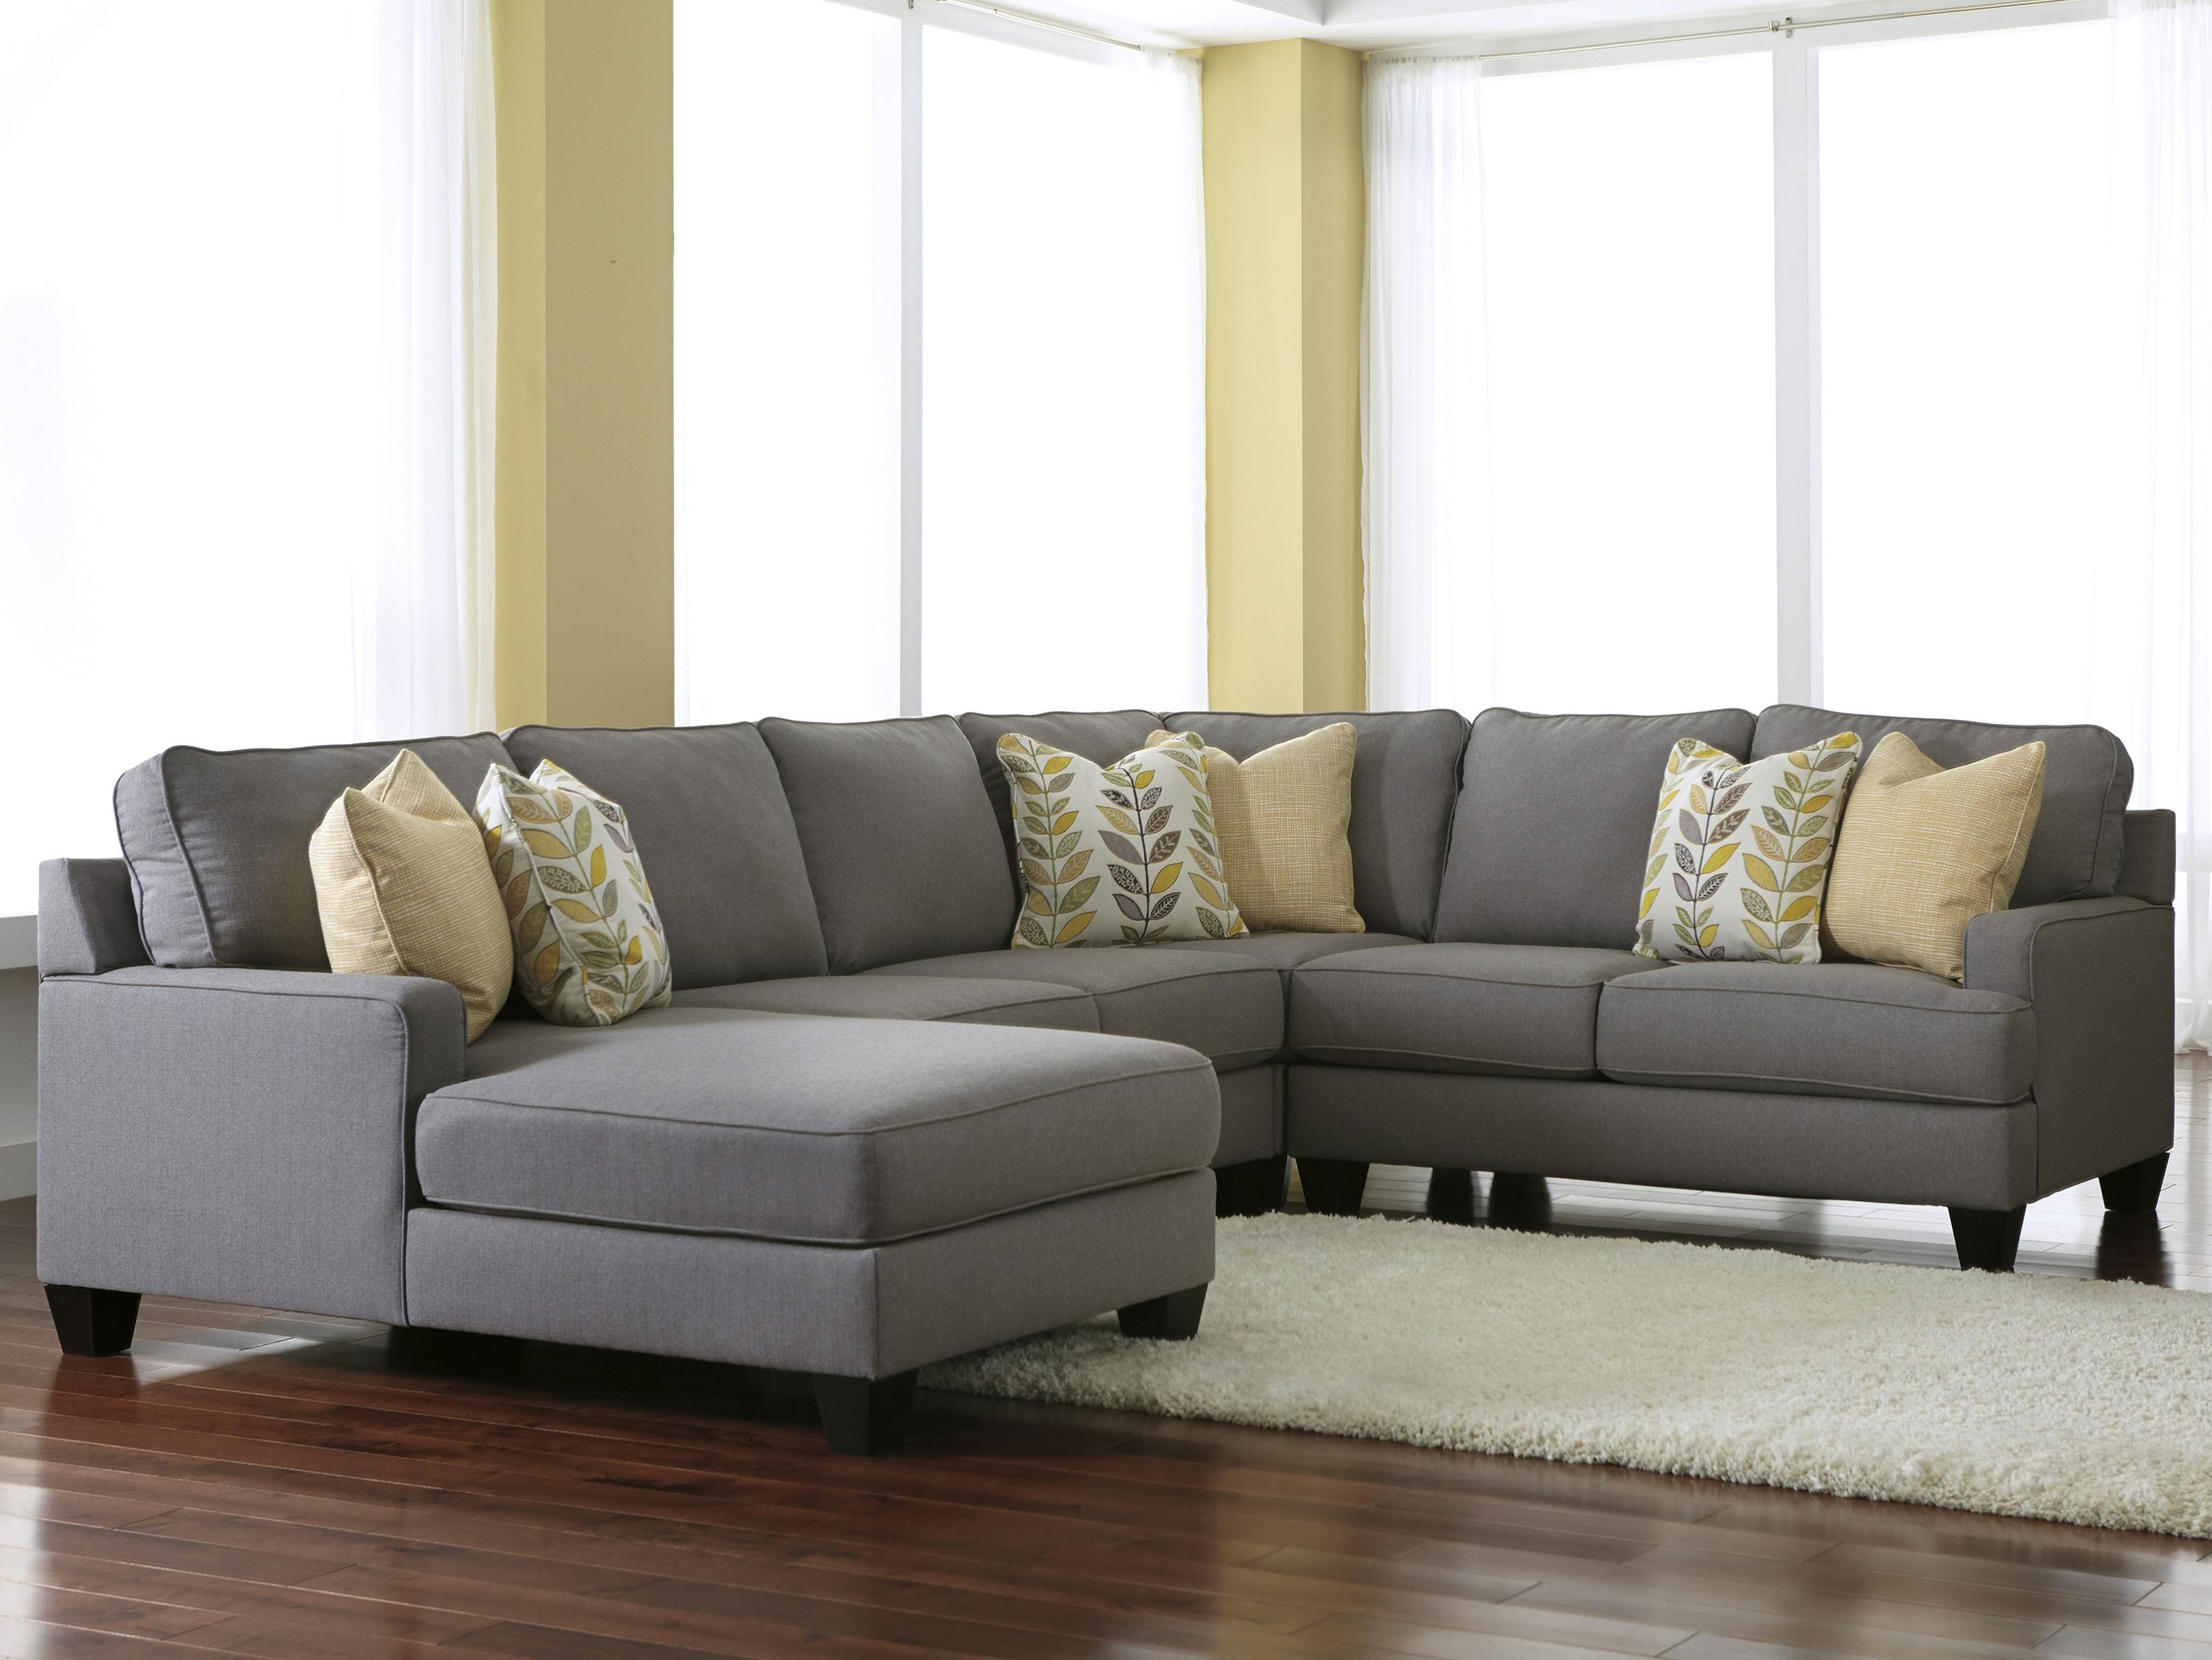 Modern 4 Piece Sectional Sofa with Left Chaise & Reversible Seat